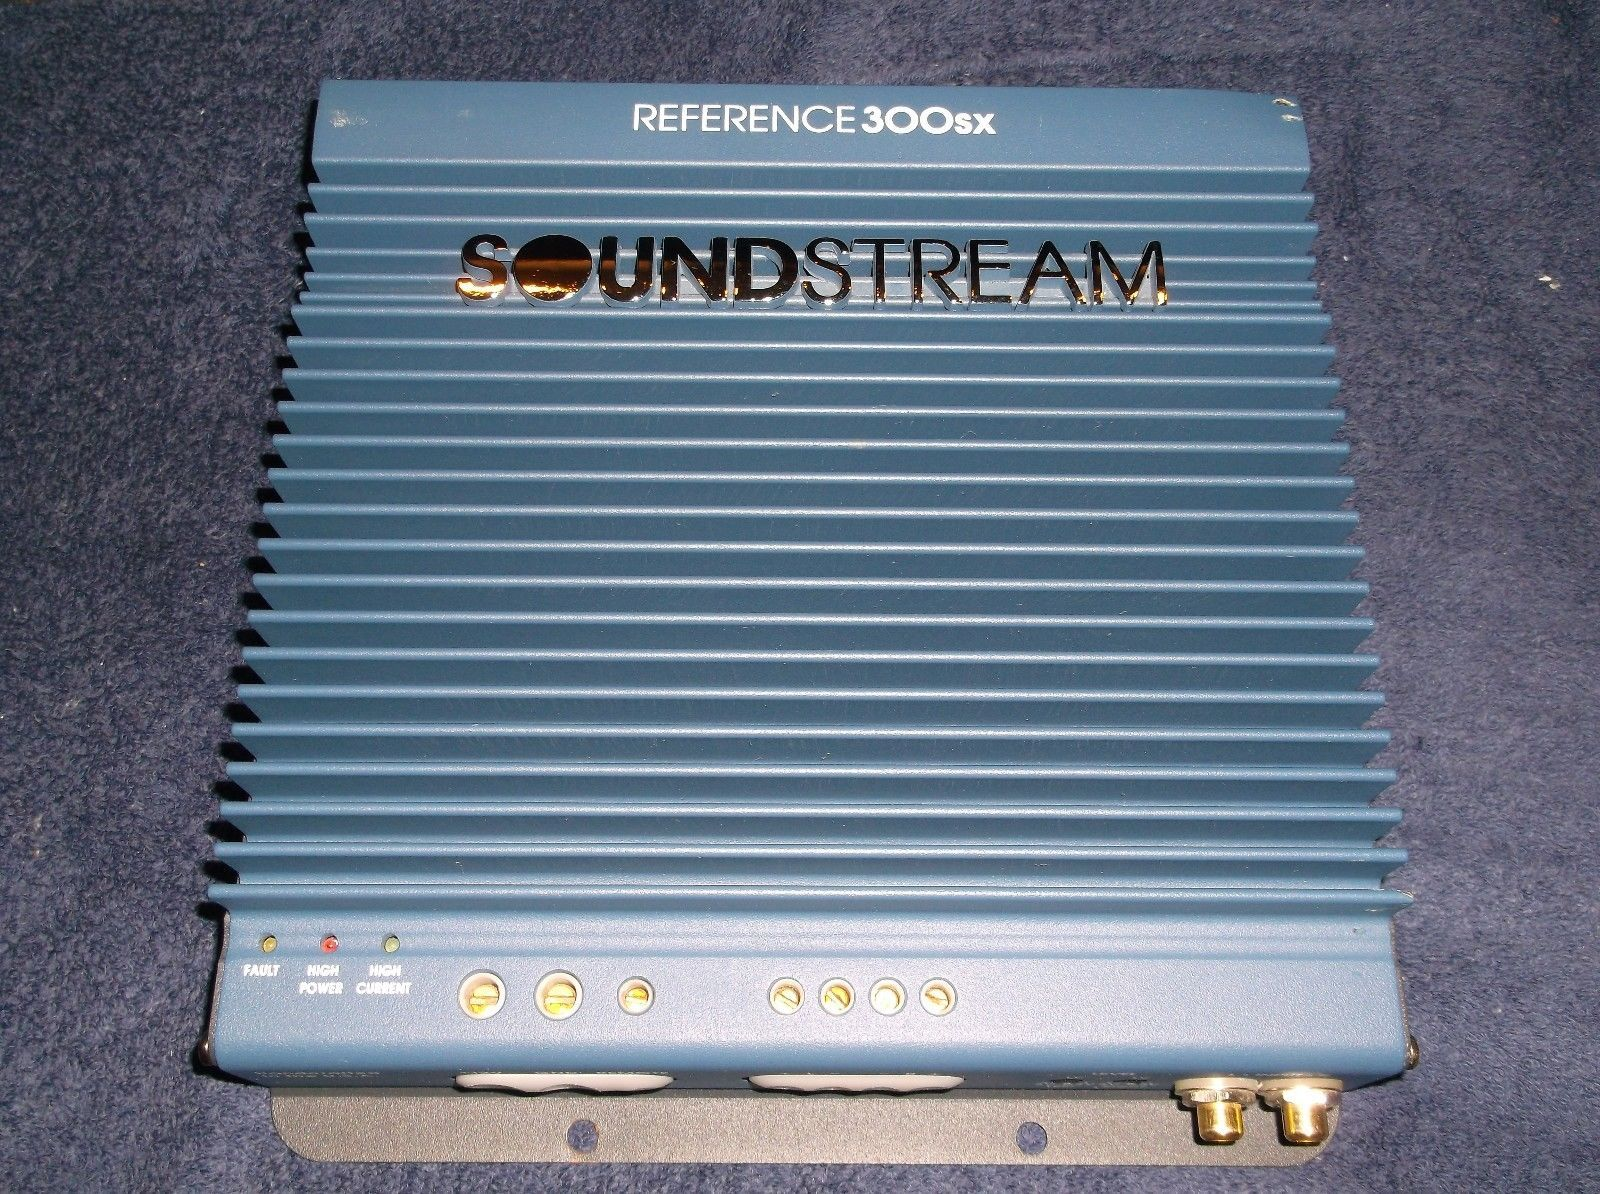 SOUNDSTREAM - Reference 300sx 2 Channel Amplifier. Made in ...